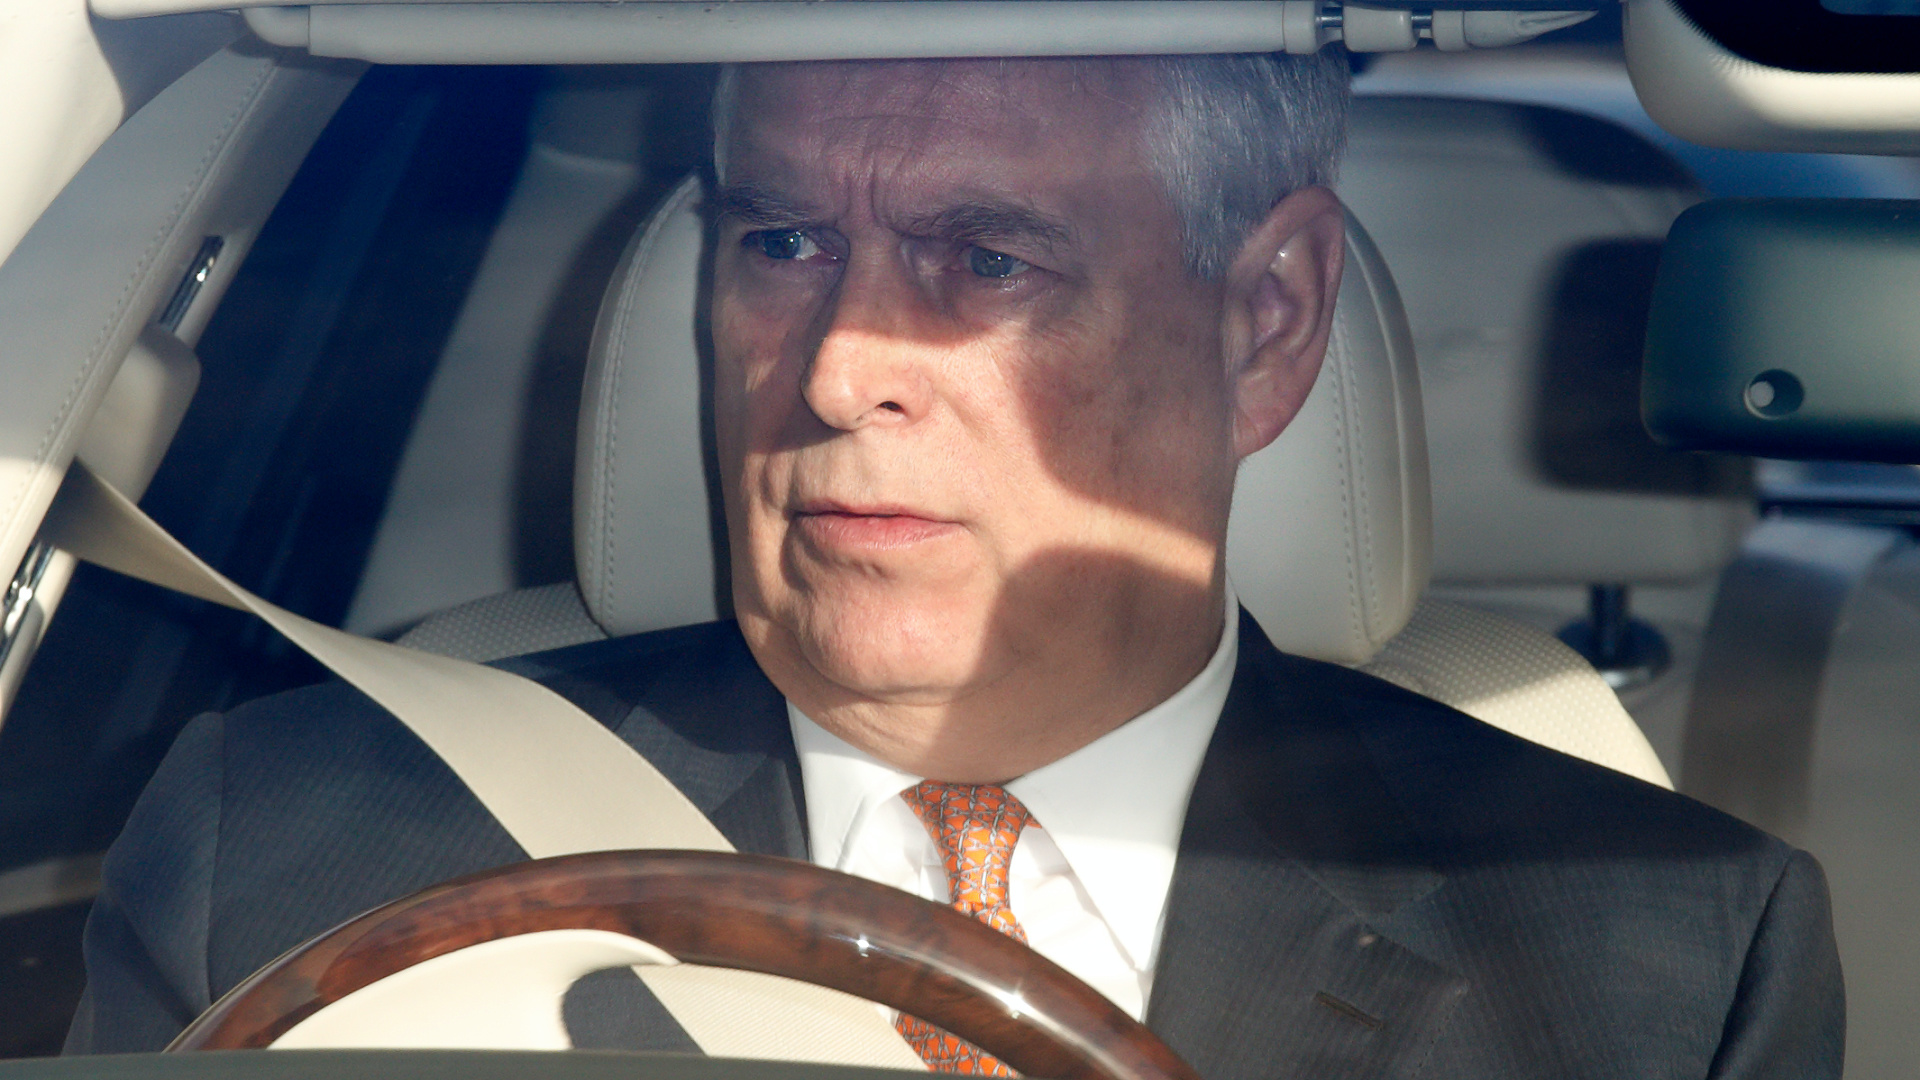 Prince Andrew receives court papers, the latest amongst a lifetime of scandals